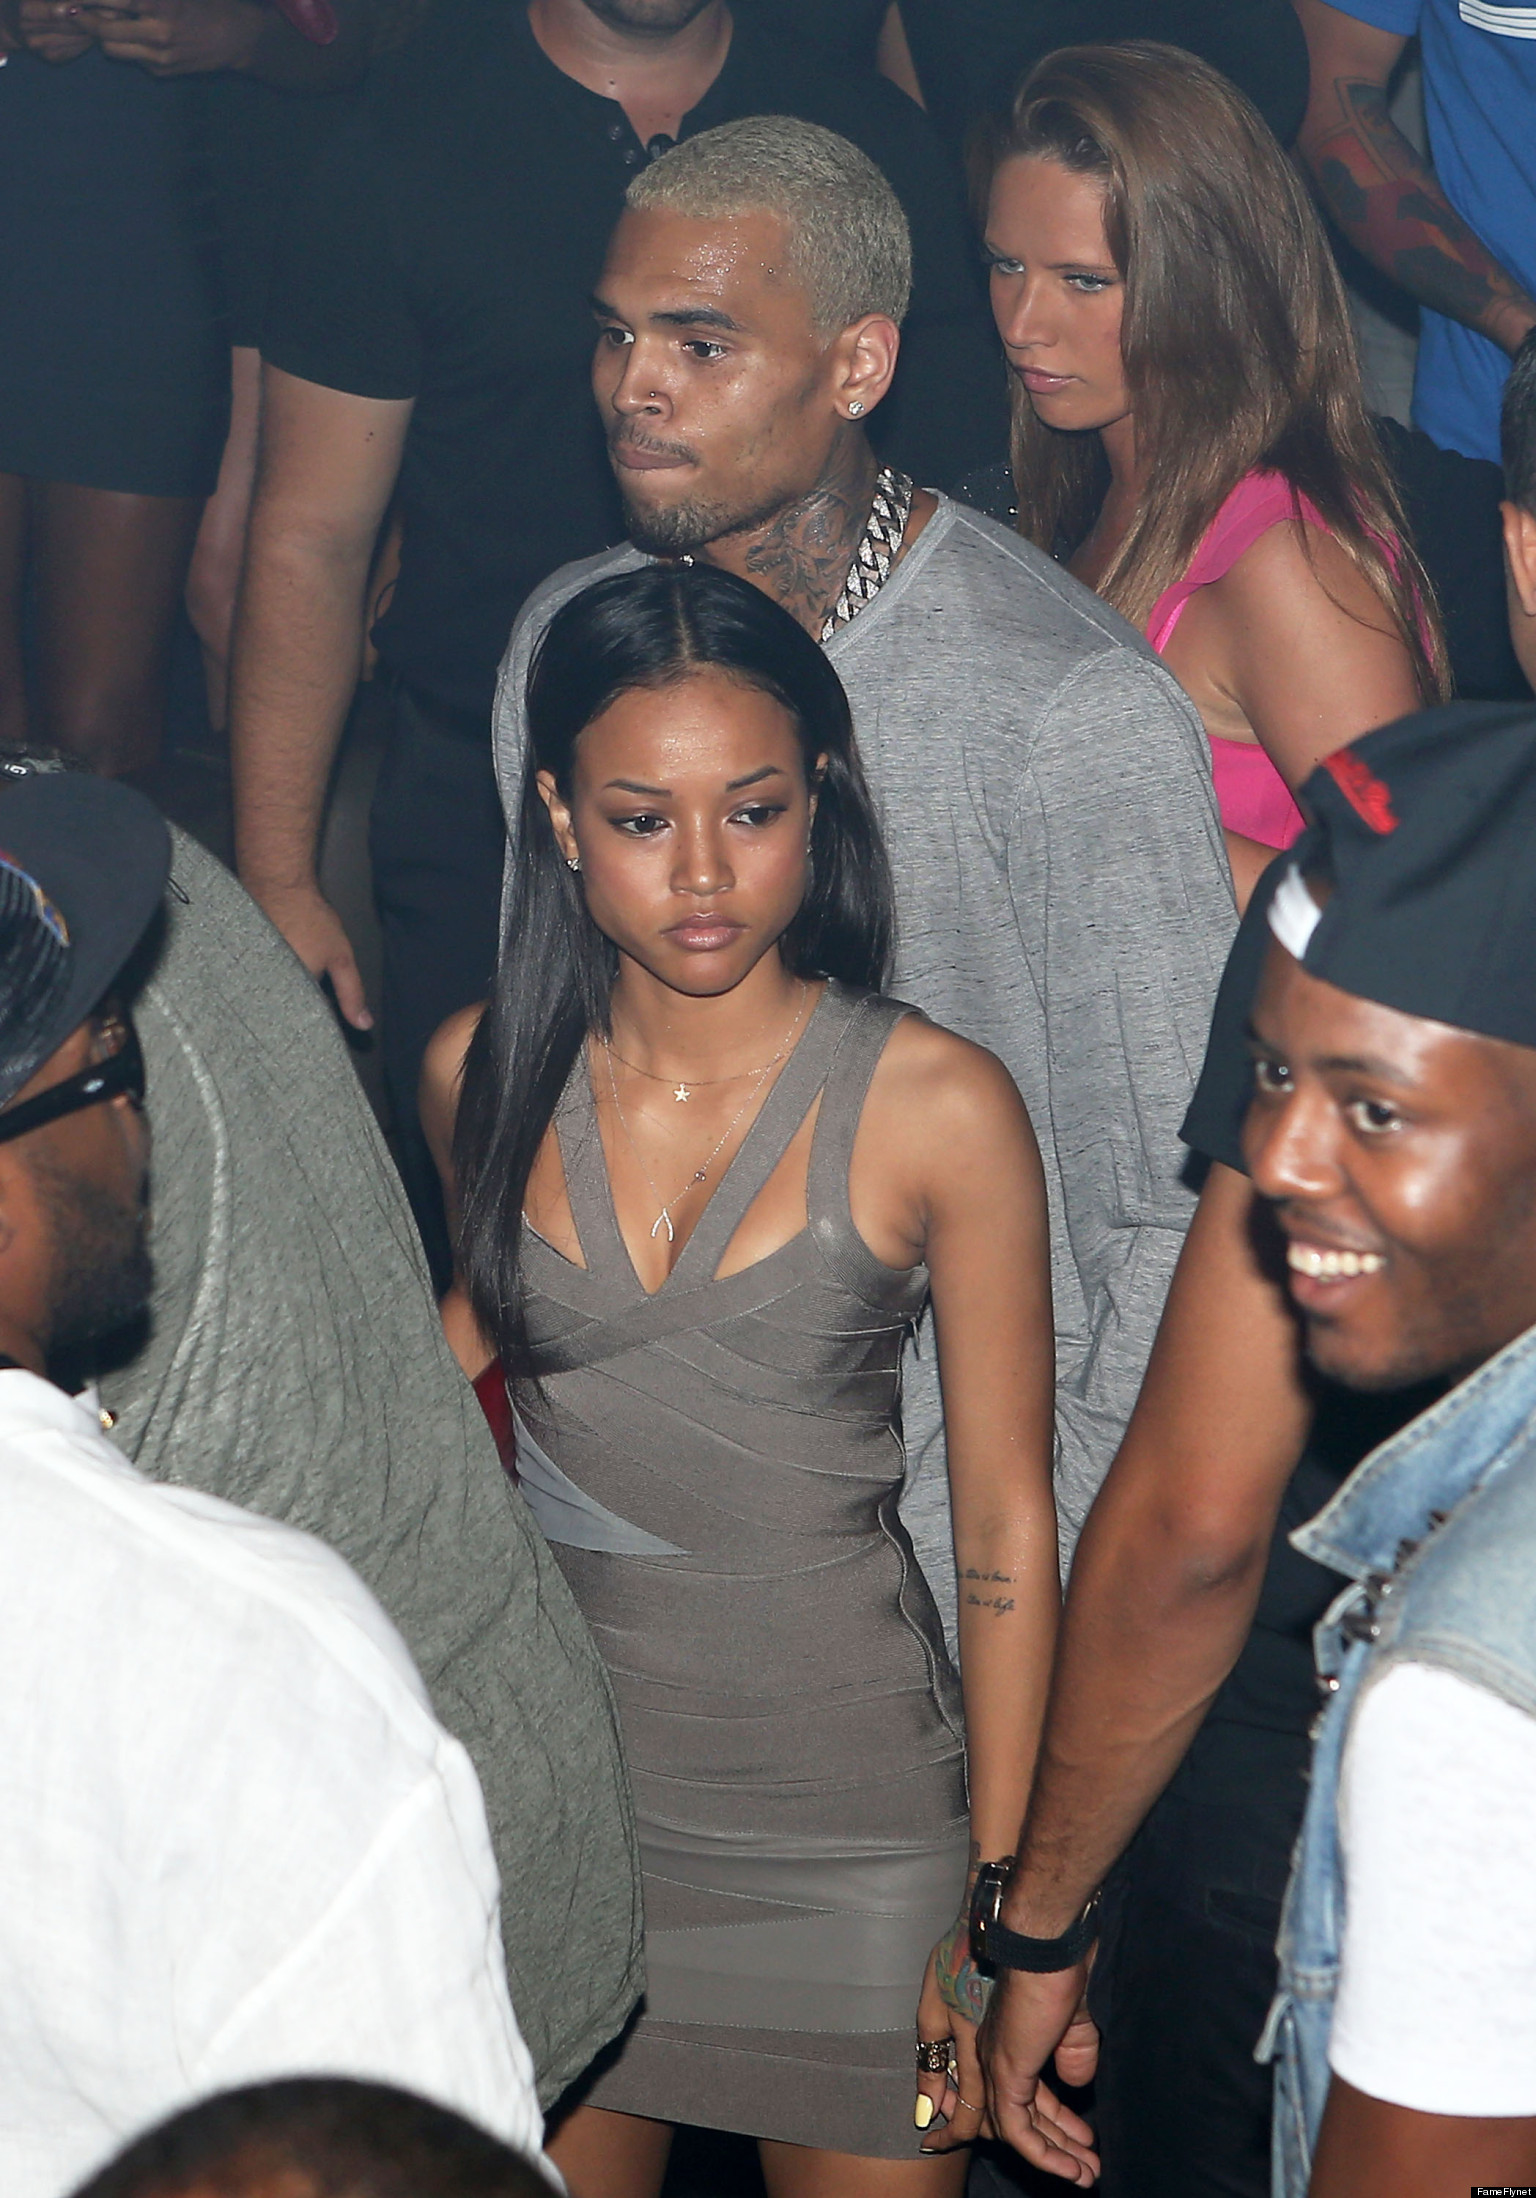 is chris brown still dating karrueche tran A website is claiming to know karrueche tran was freaked by chris brown allegedly sending her a birthday message  featured tran, who was dating brown at the  still doesn't know for.